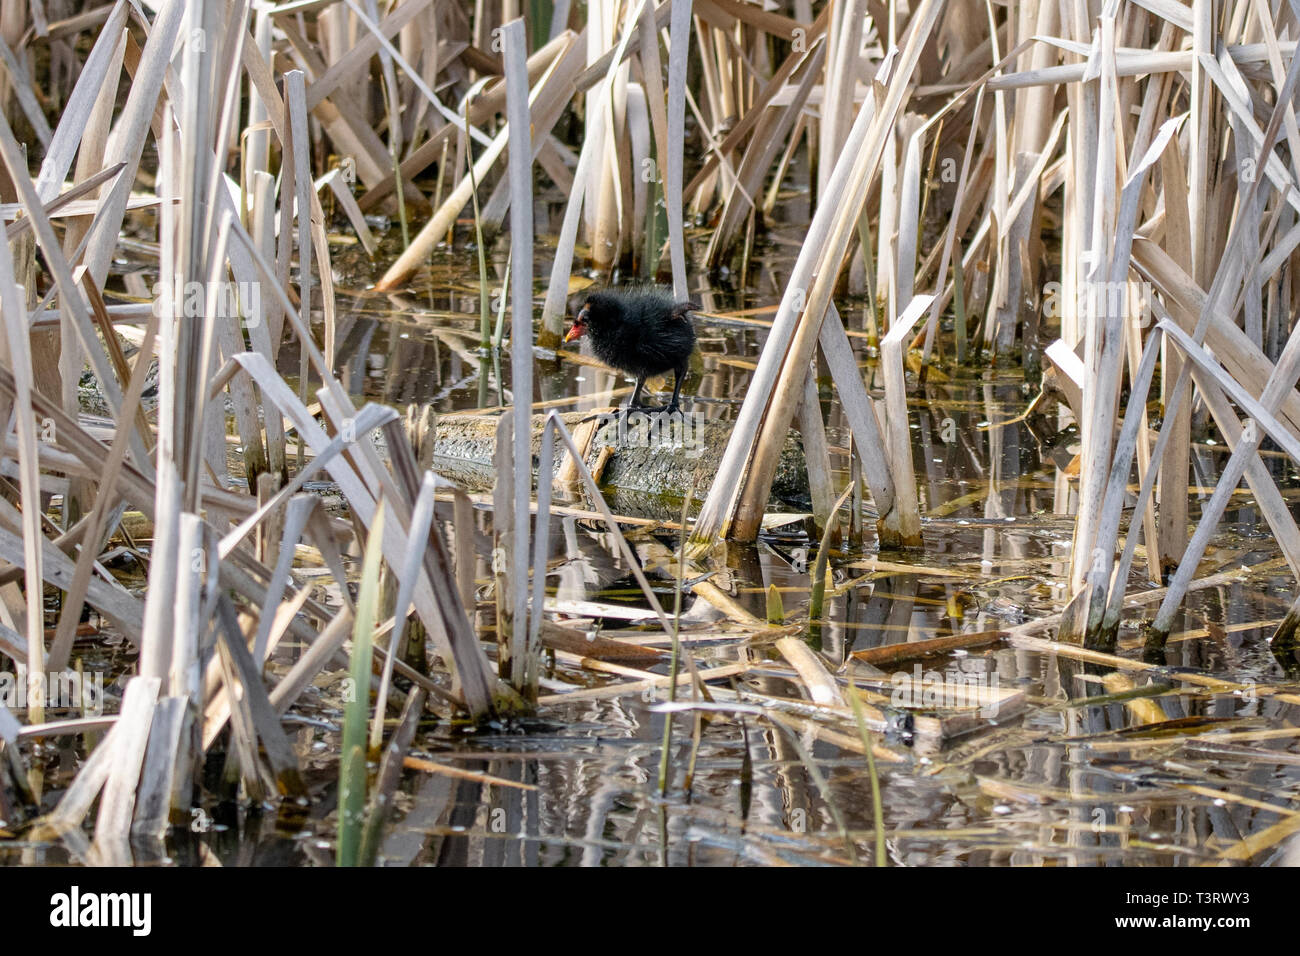 Young moorhen (Gallinula chloropus) duckling  amongst reeds standing on a floating wooden log in early spring sunlight Stock Photo